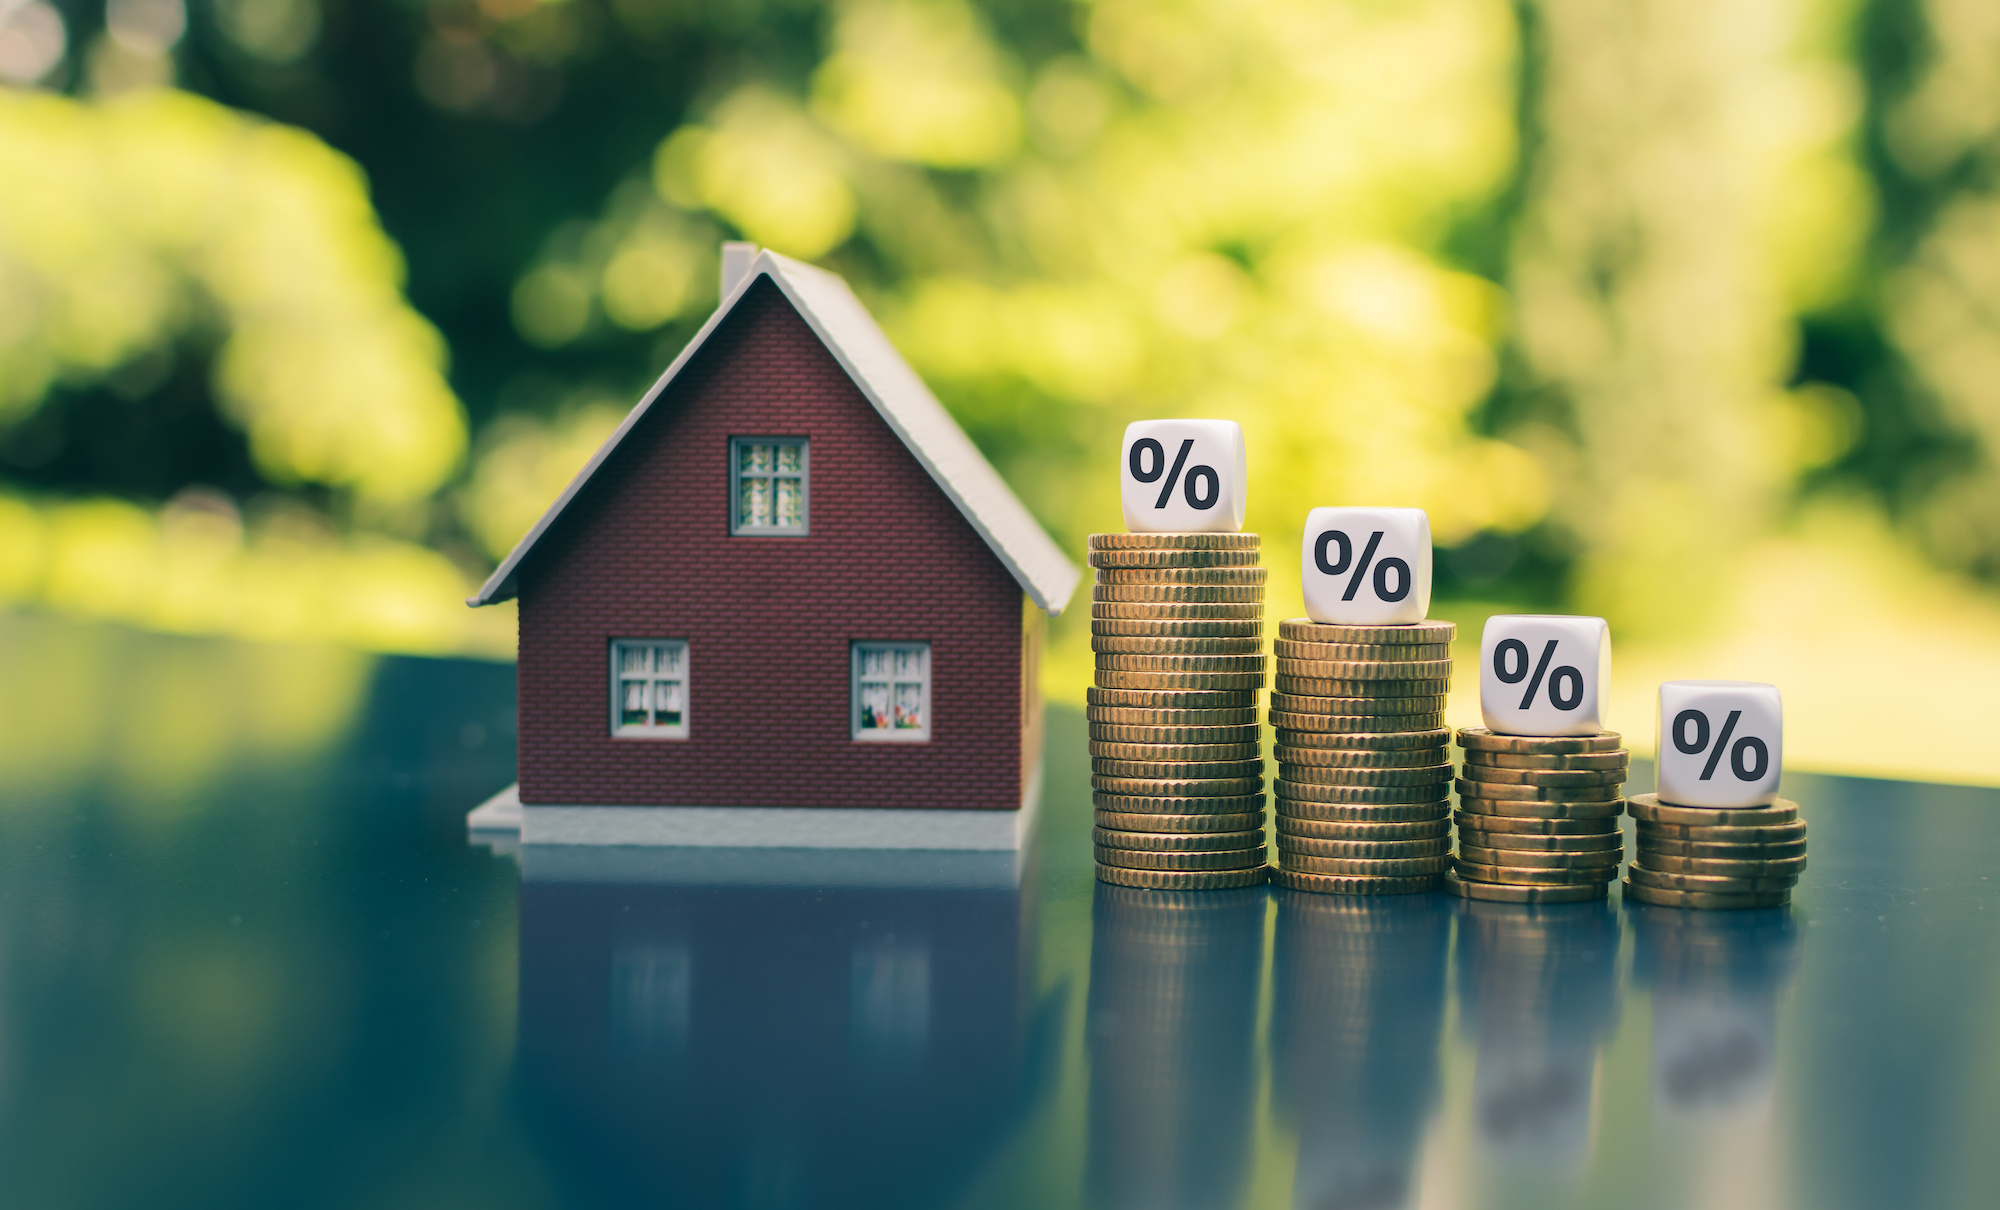 Mortgage rates in New York